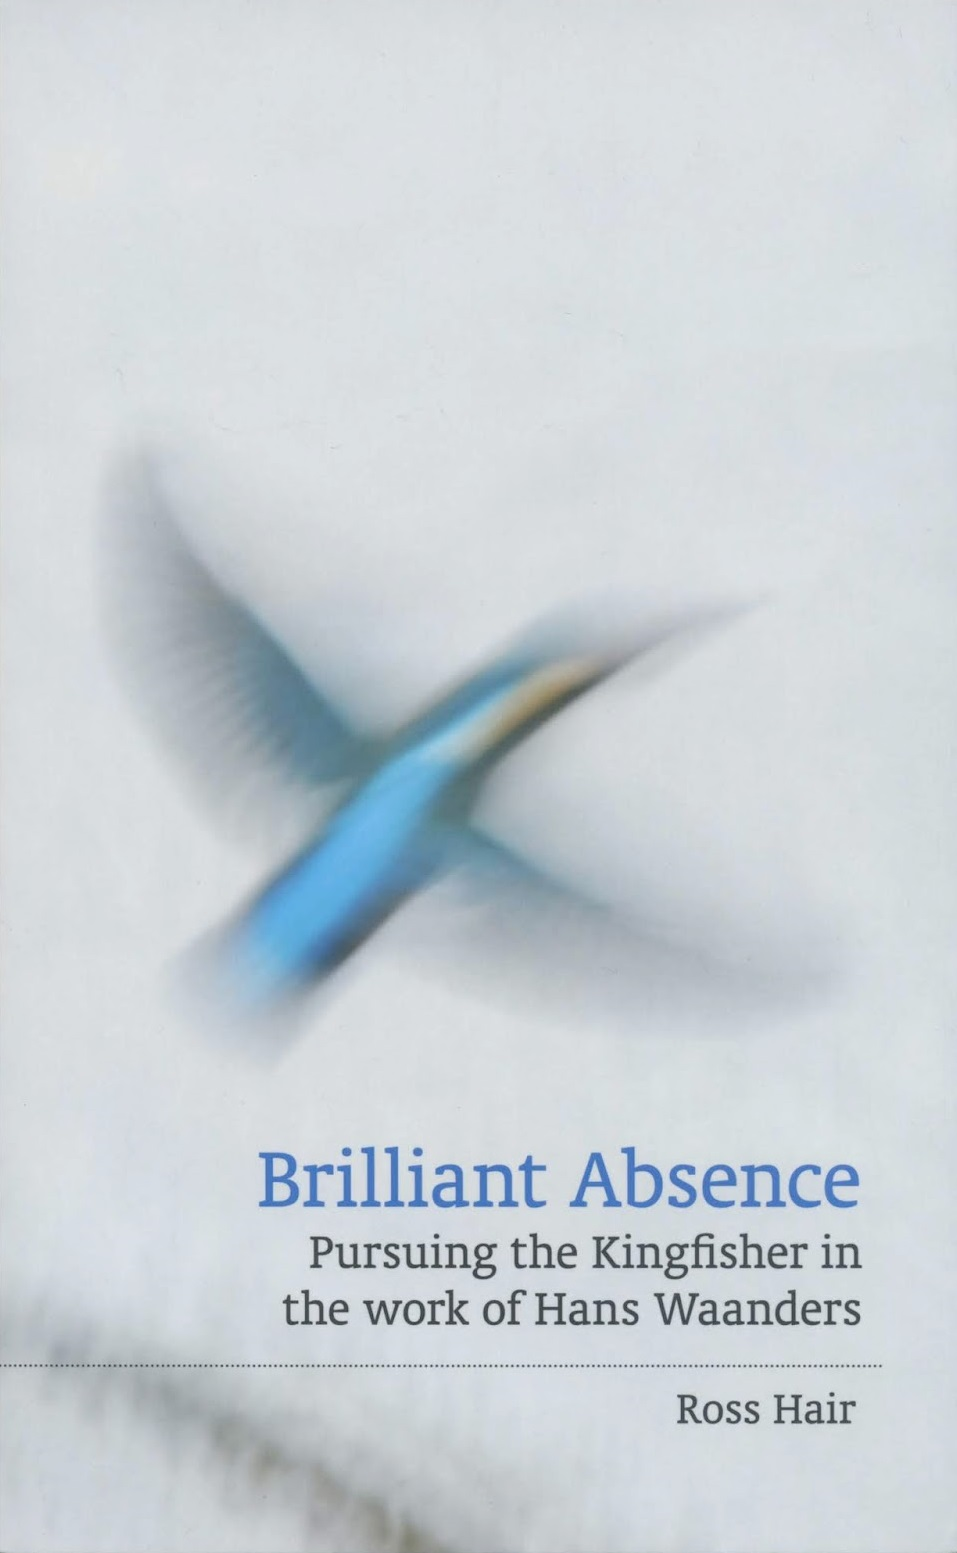 Brilliant Absence